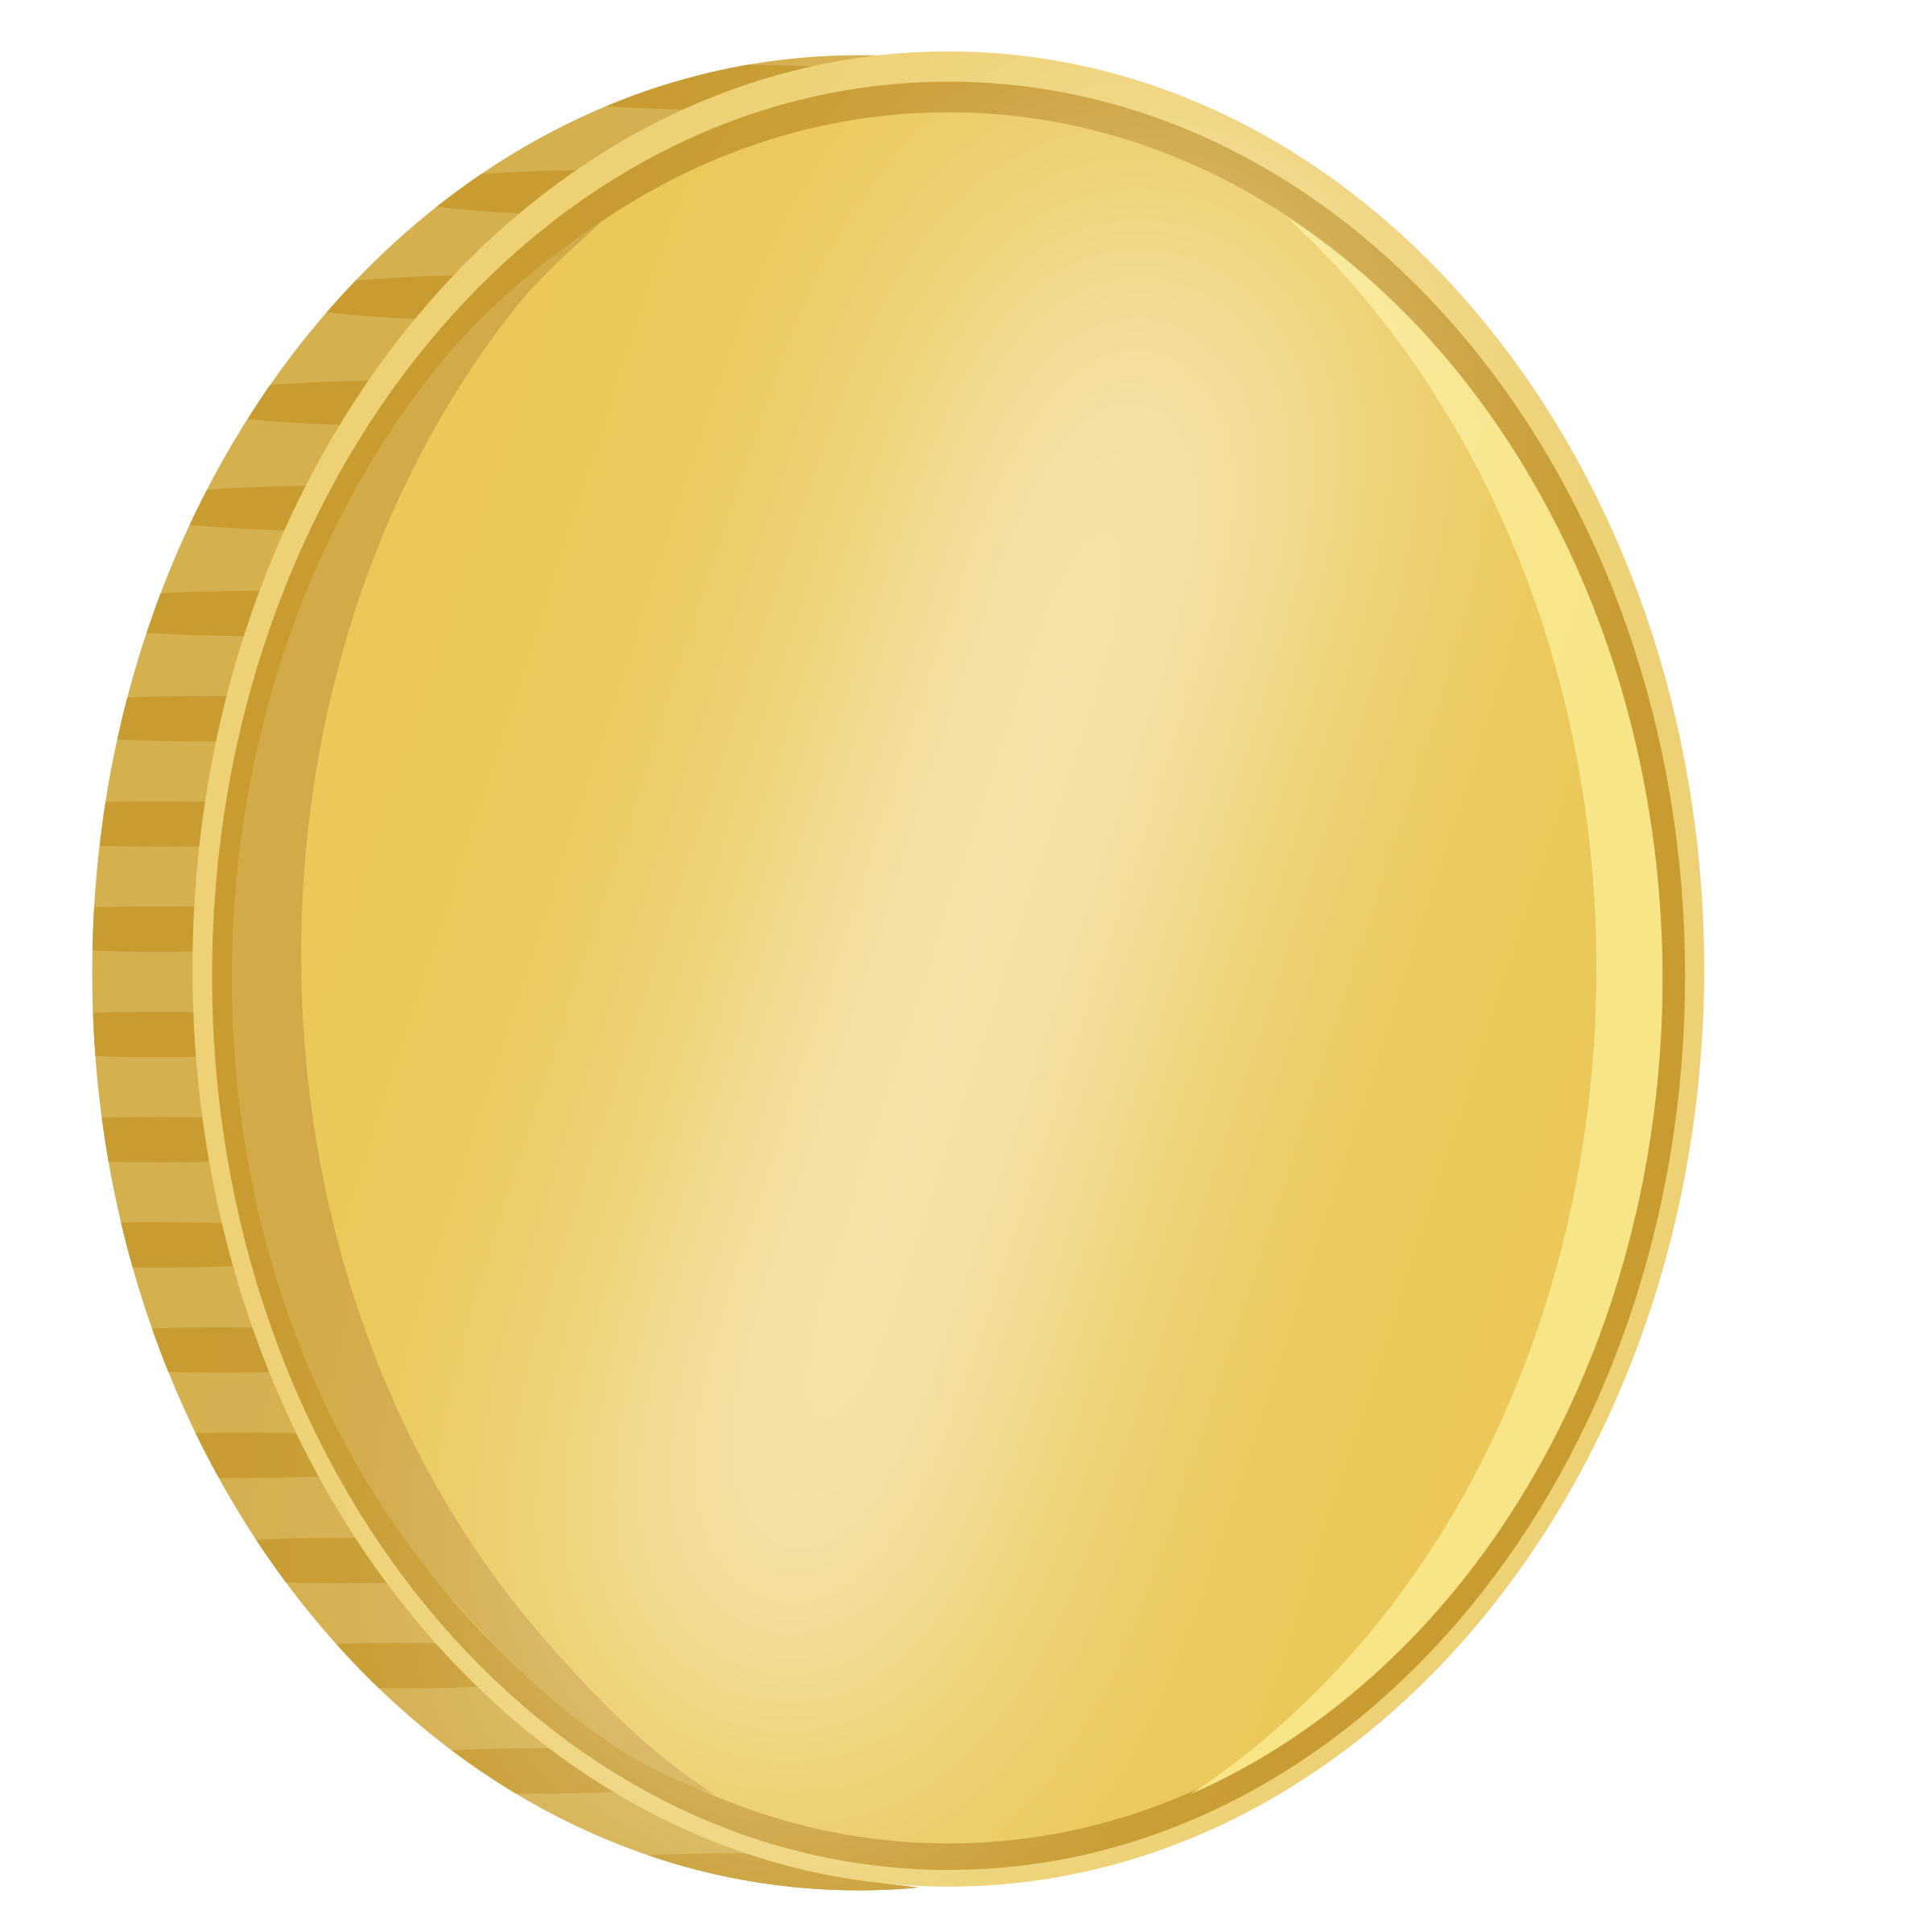 gold coin PNG image - Coin HD PNG - Coins PNG HD